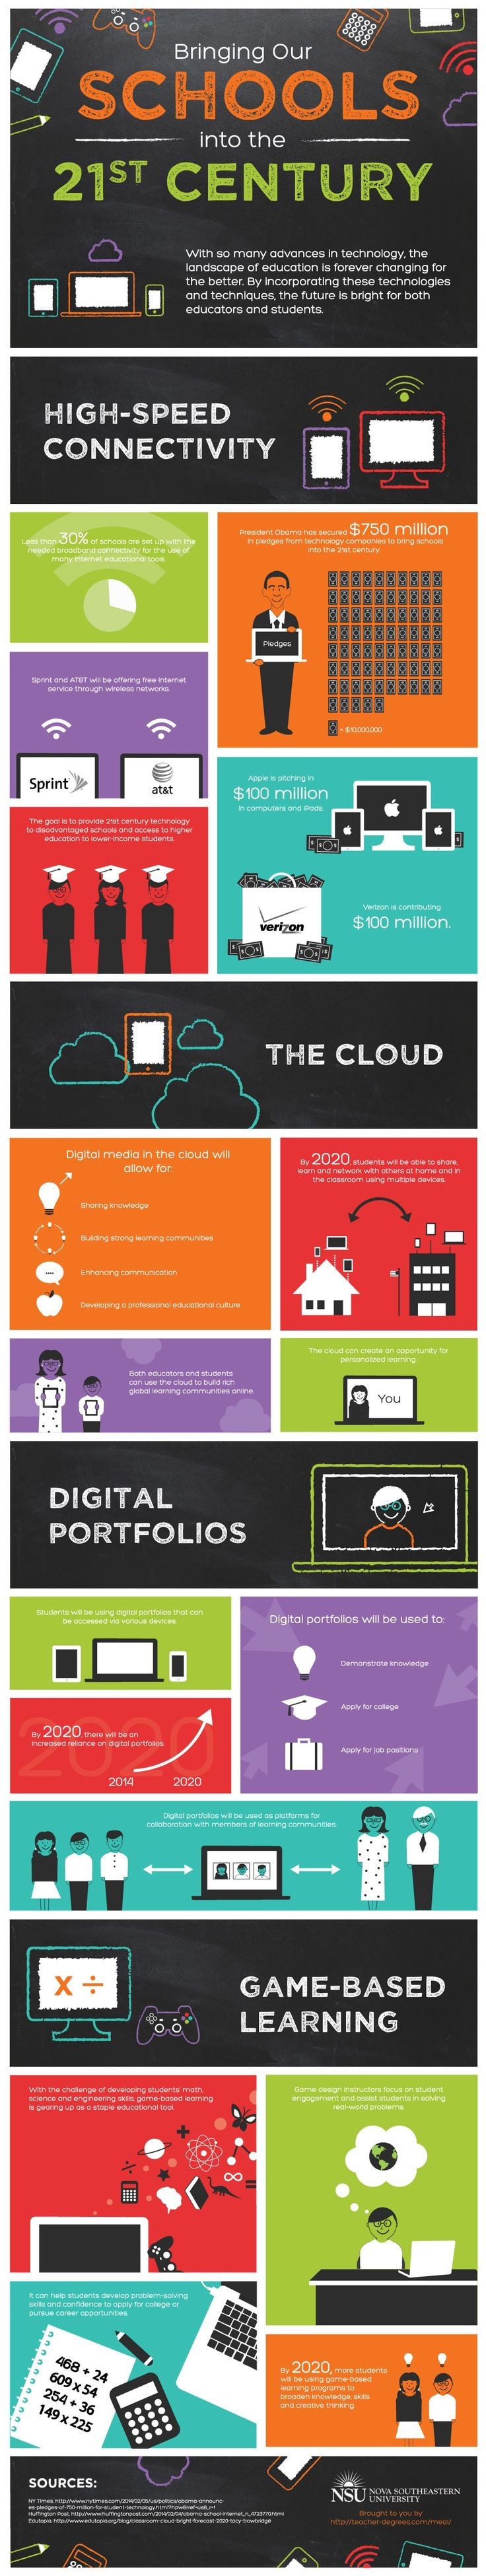 Opportunities afforded by Technology for 21st Century Education #education #elearning